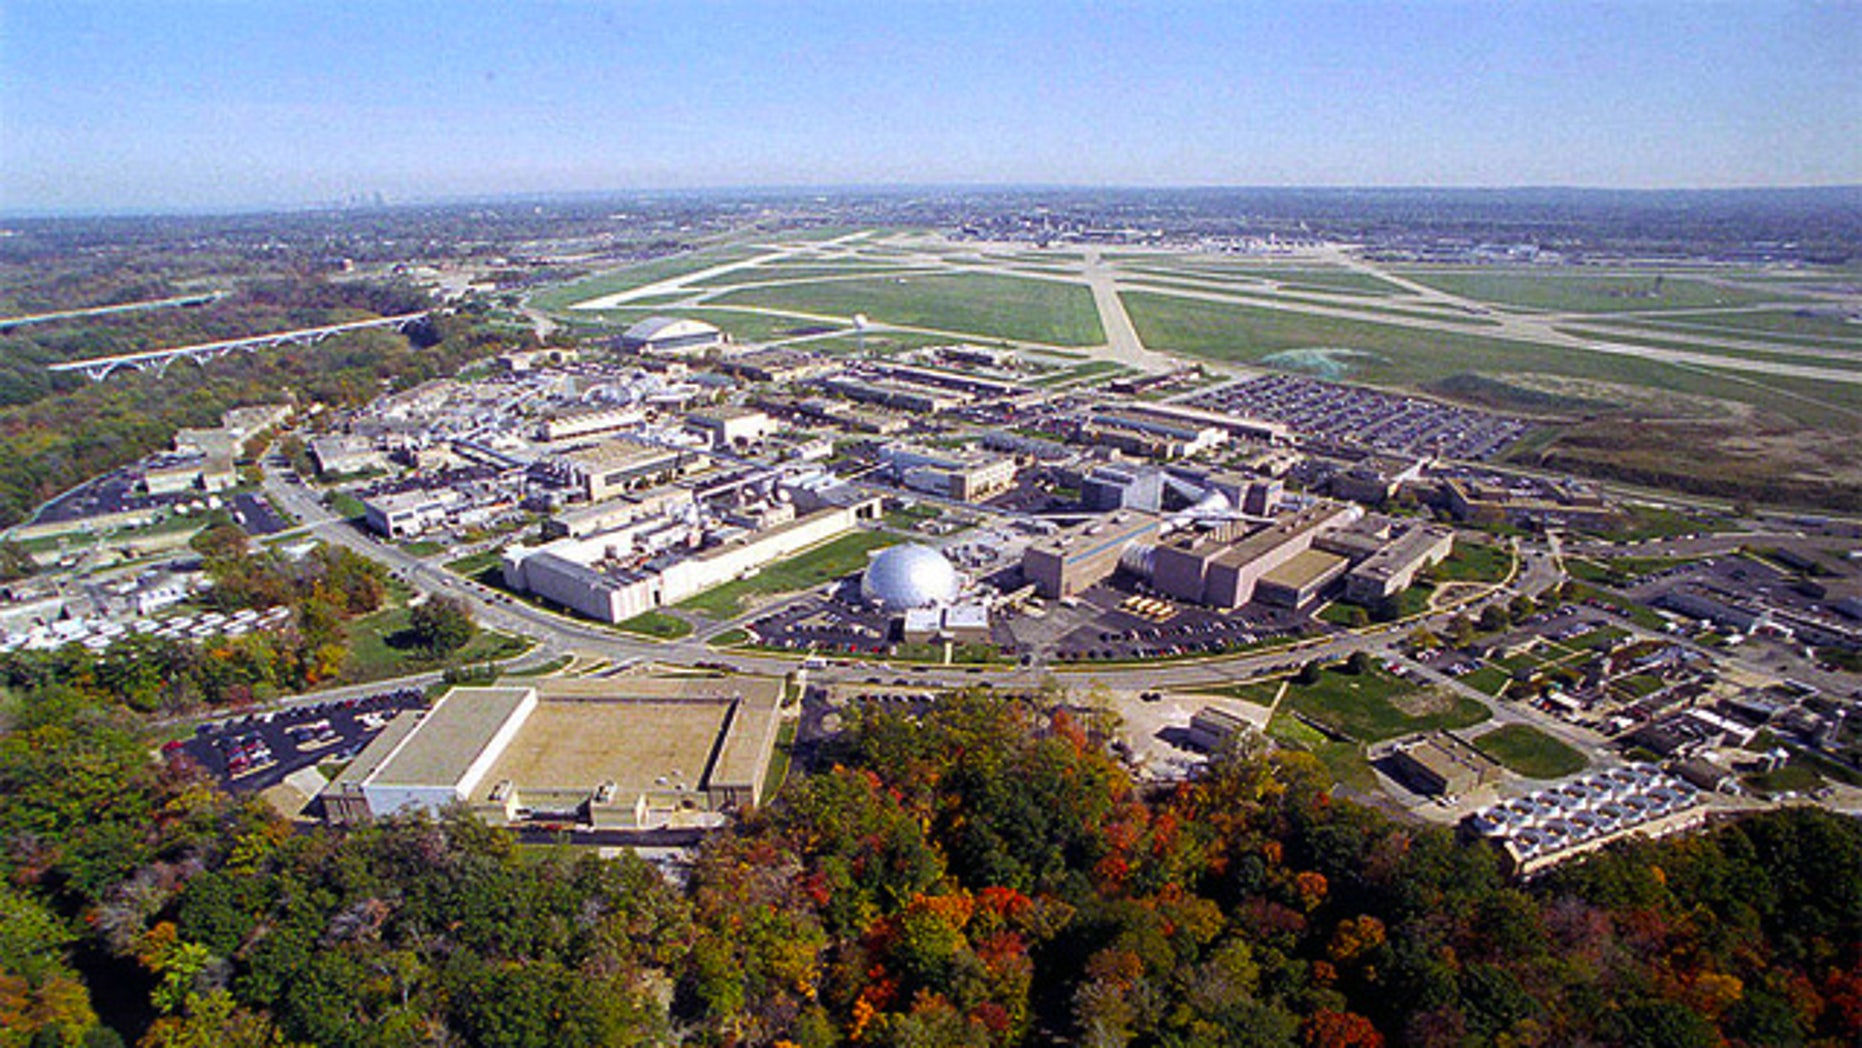 An aerial view of NASA's Glenn Research Center at Lewis Field, Cleveland, Ohio.